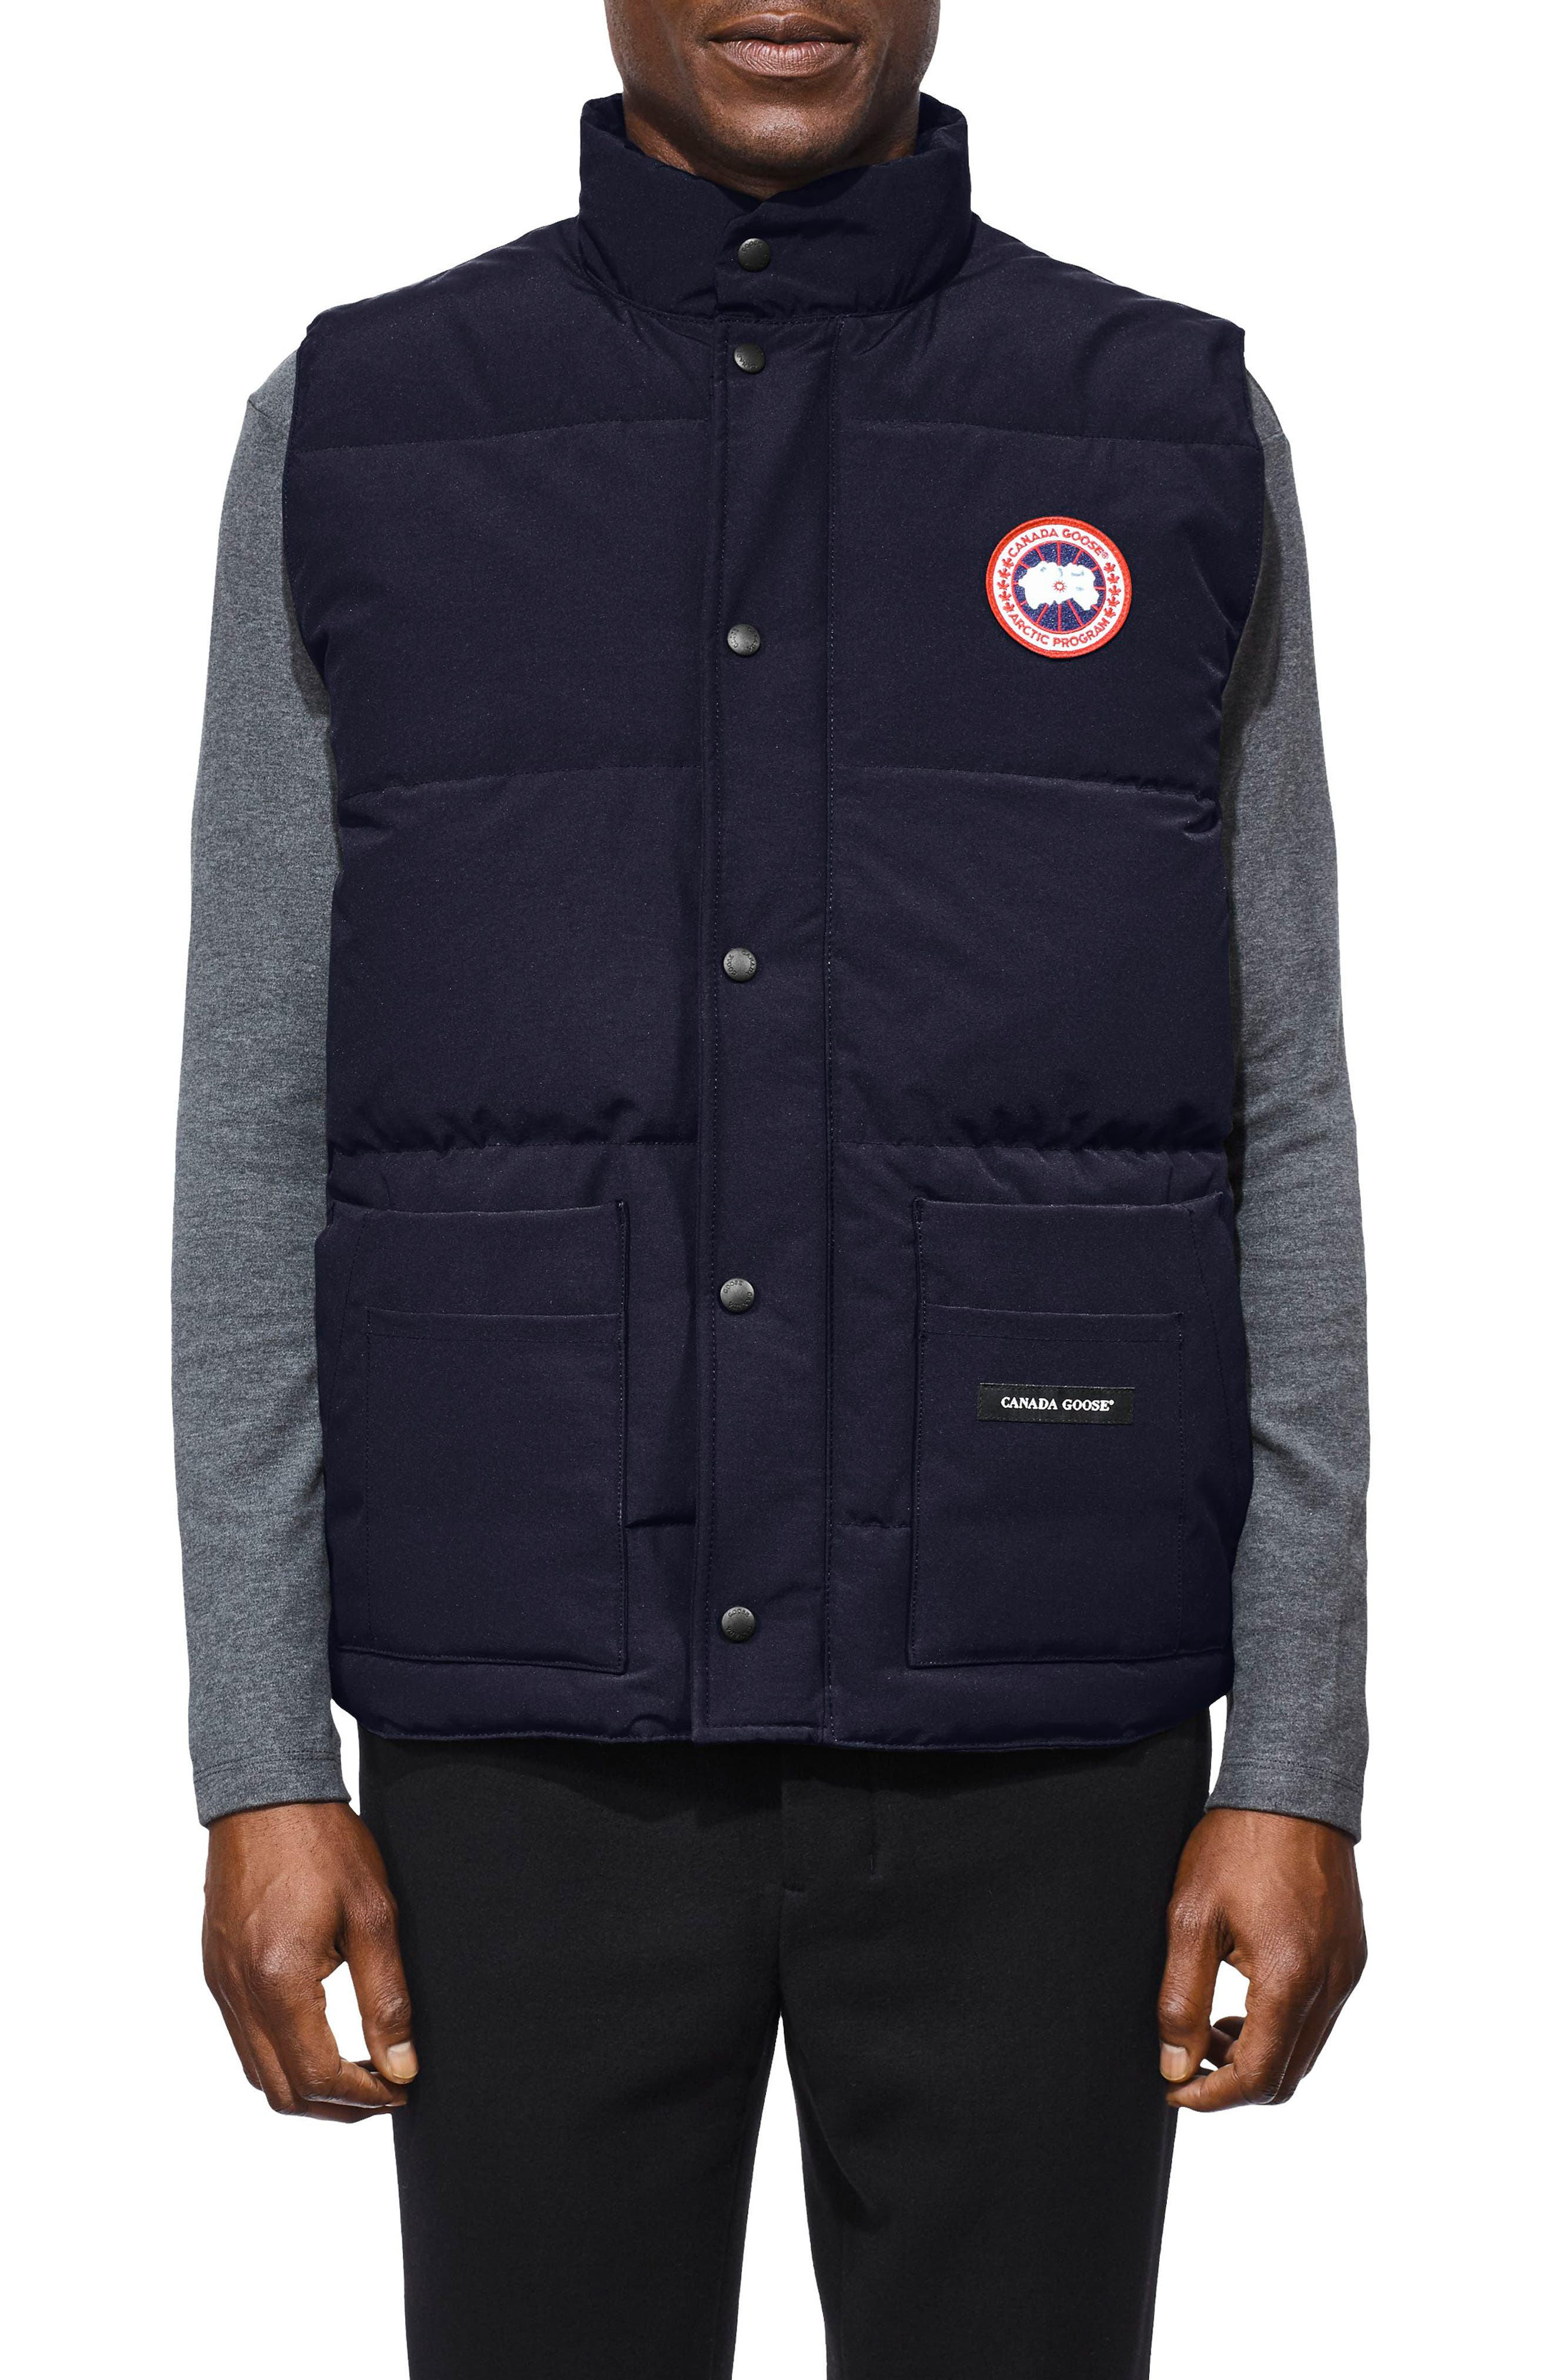 CANADA GOOSE, Freestyle Regular Fit Down Vest, Main thumbnail 1, color, ADMIRAL BLUE